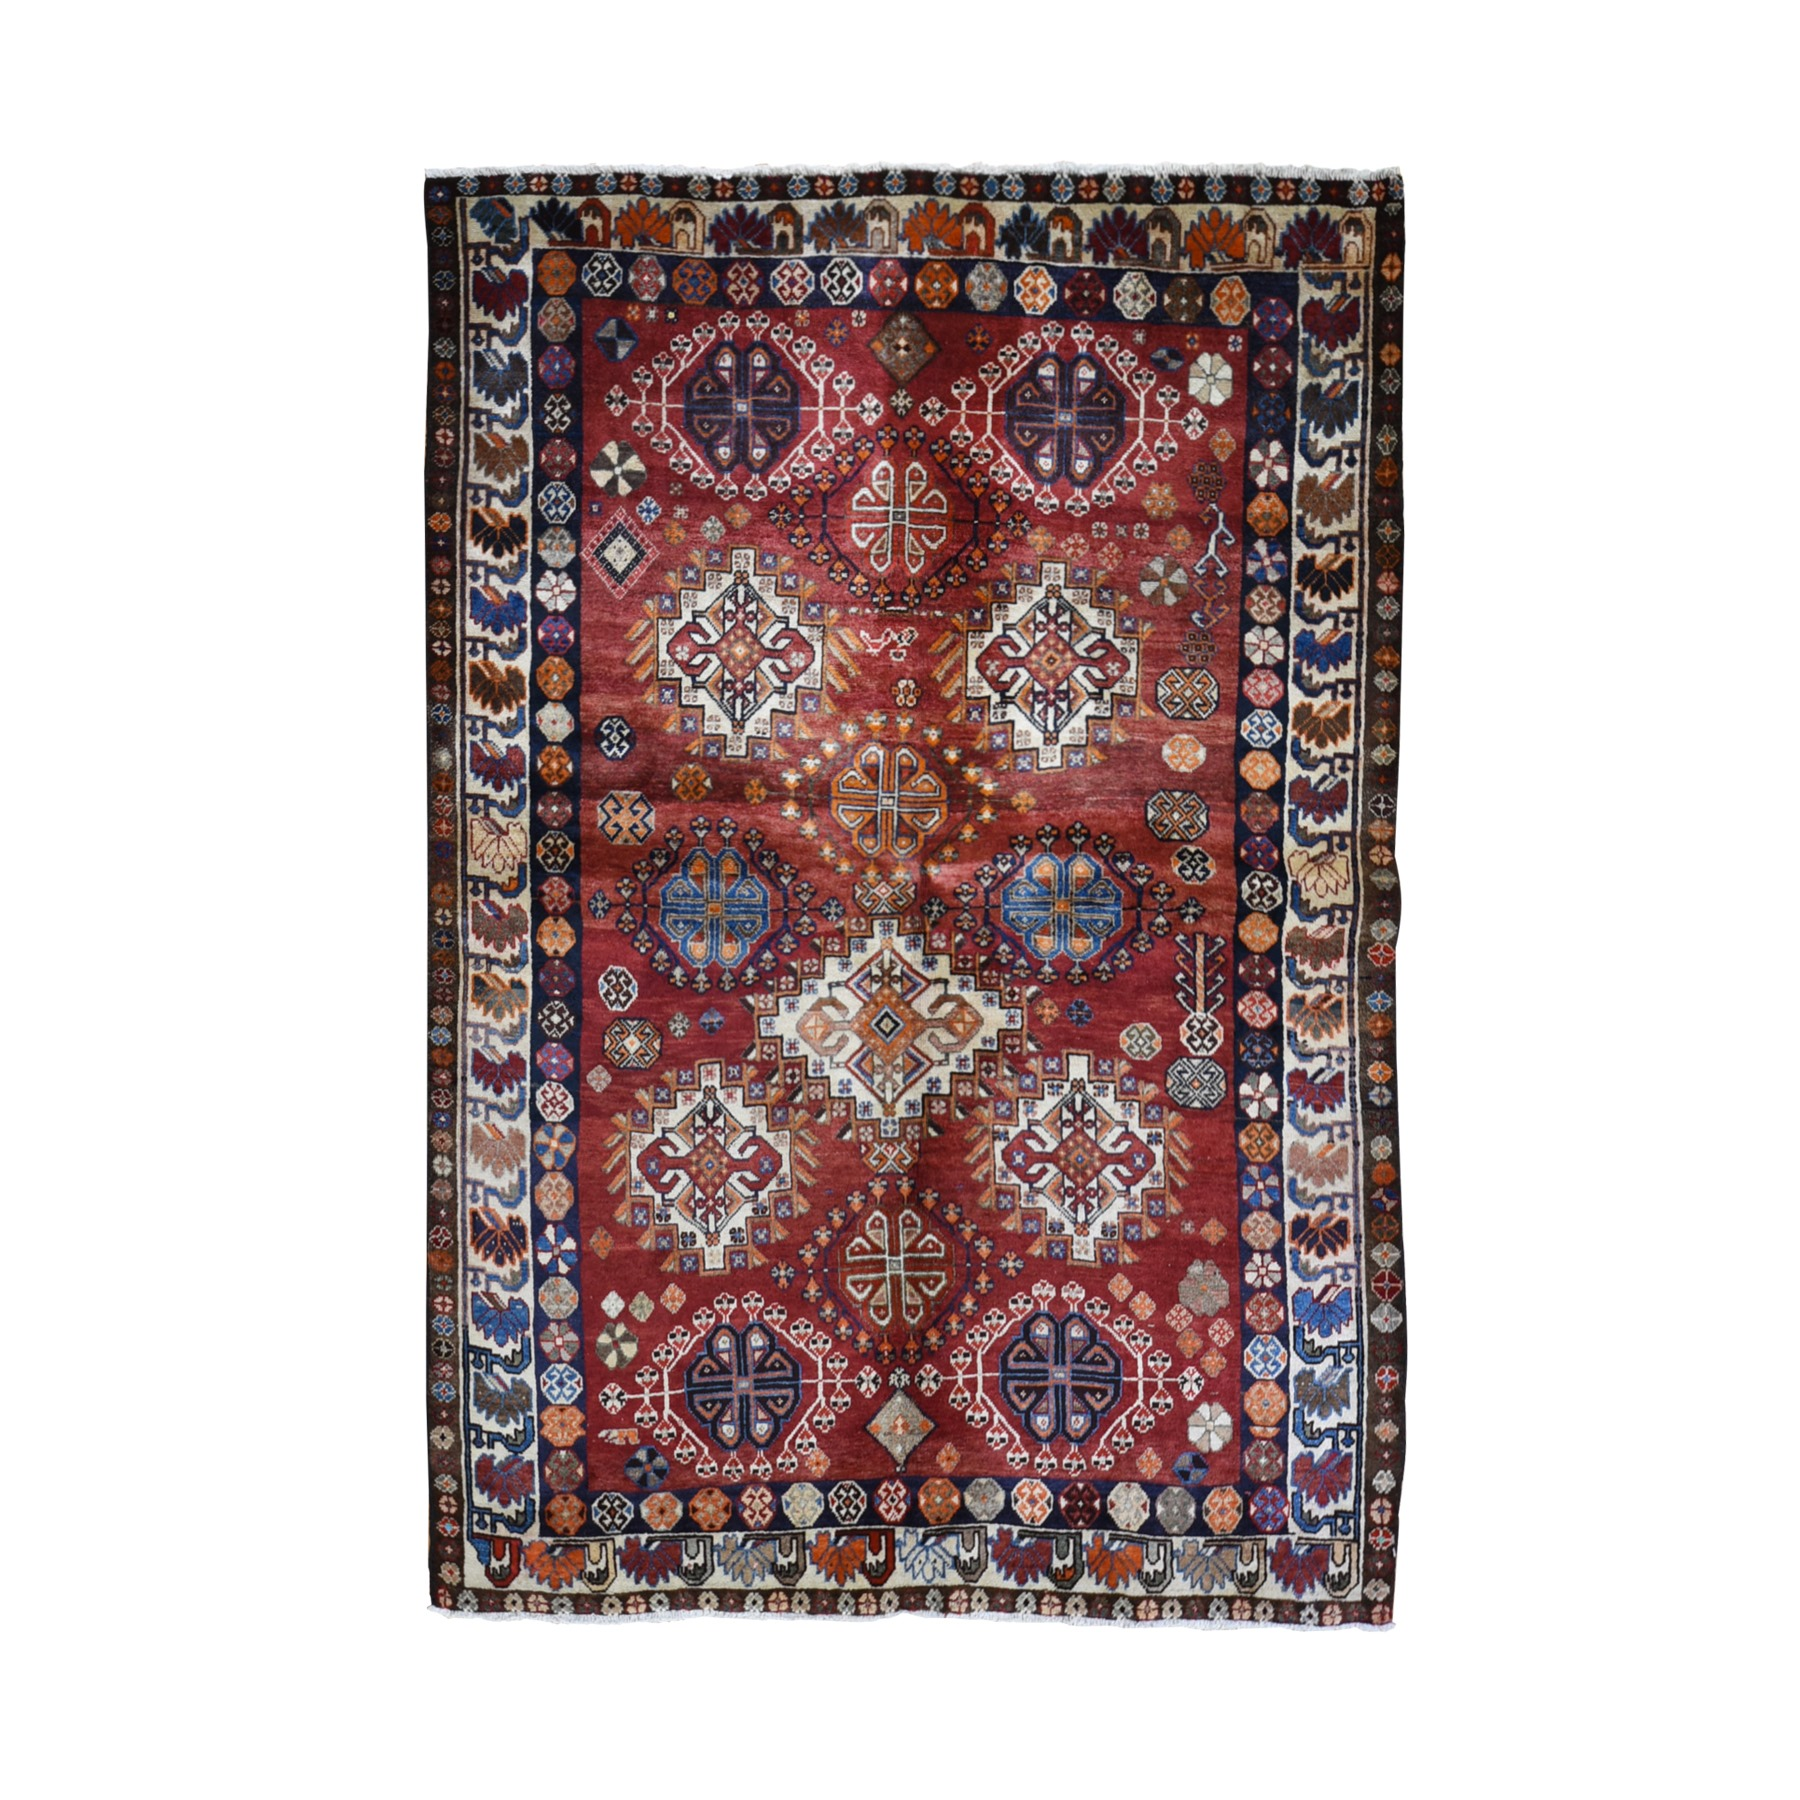 "5'7""x7'10"" Vintage Persian Shiraz All Over Medallion Design Orange Pure Wool Hand Woven Oriental Rug"